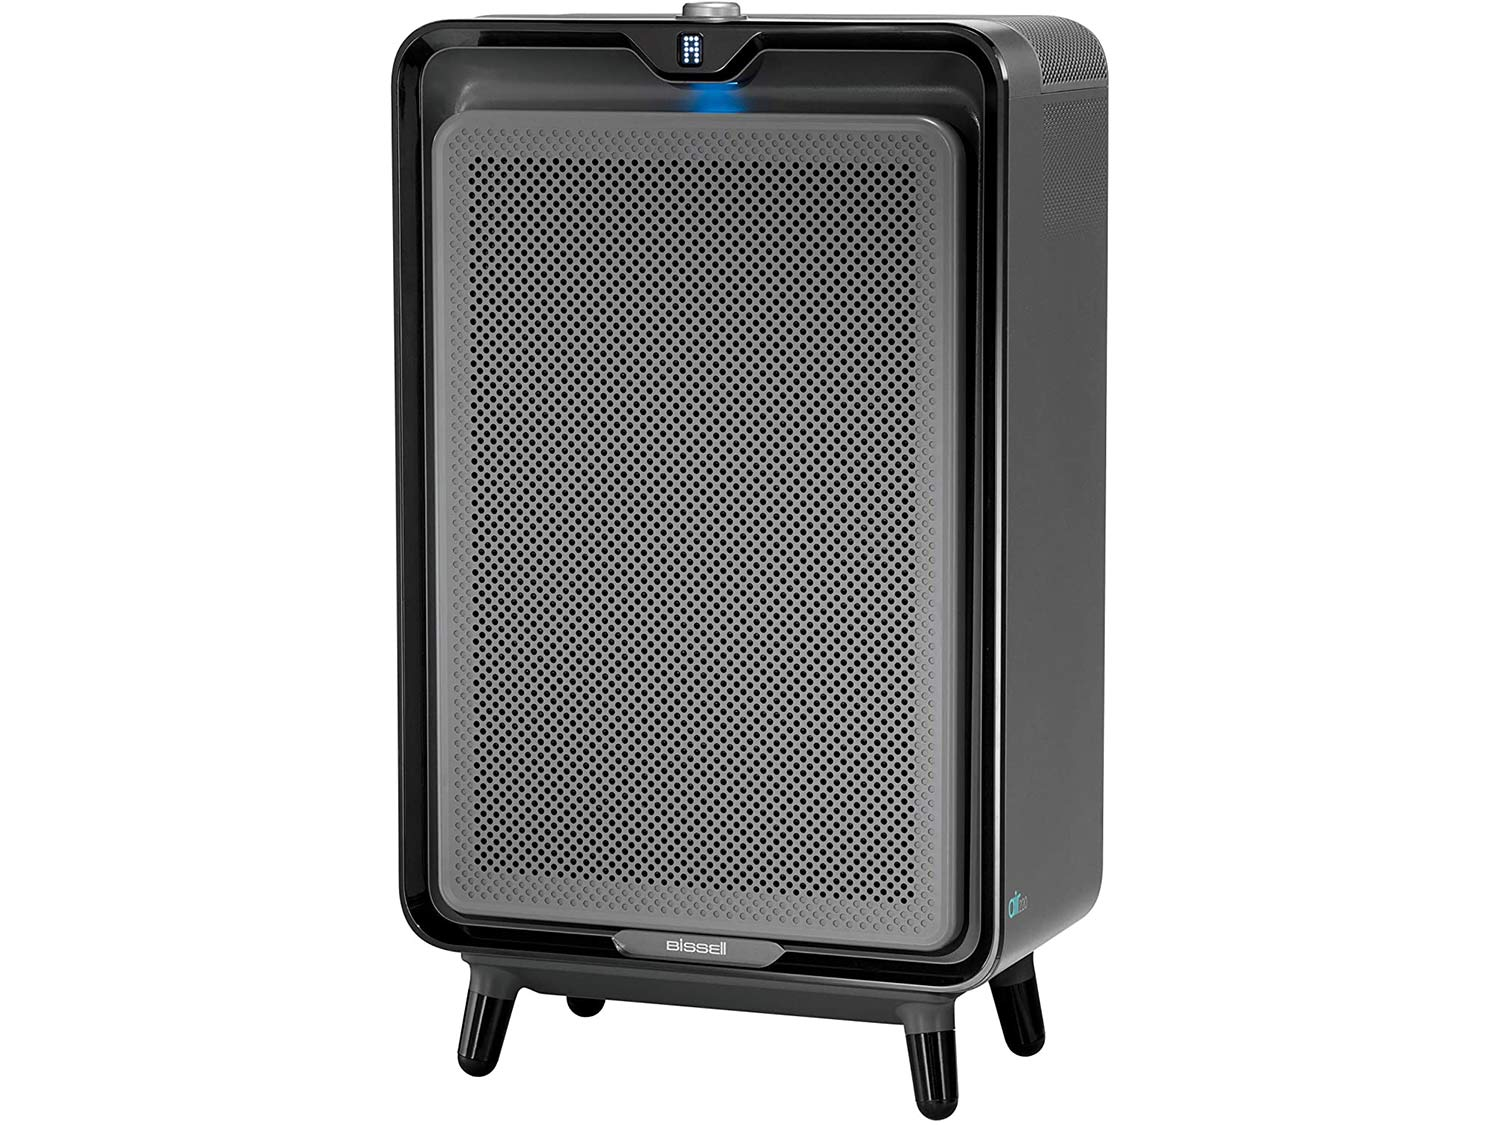 Bissell Smart Purifier with HEPA and Carbon Filters for Large Room and Home, Quiet Bedroom Air Cleaner for Allergies, Pets, Dust, Dander, Pollen, Smoke, Odors, Auto Mode, air220, 2609A